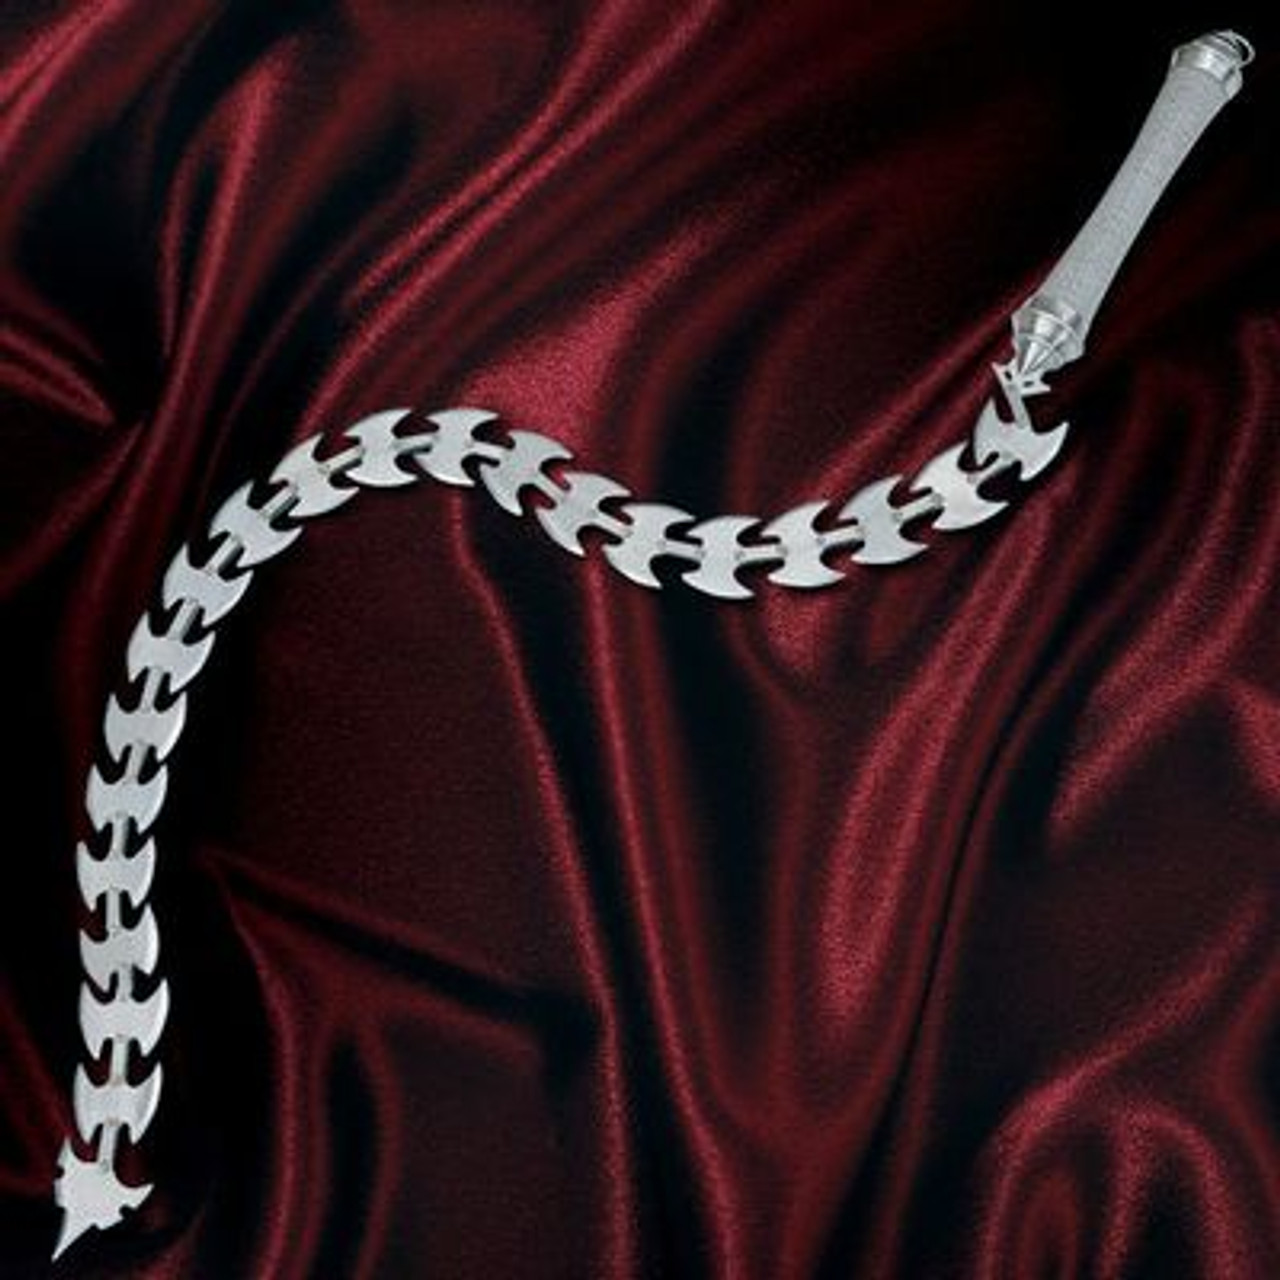 Professional Stainless Steel Chain Whip - BK1252